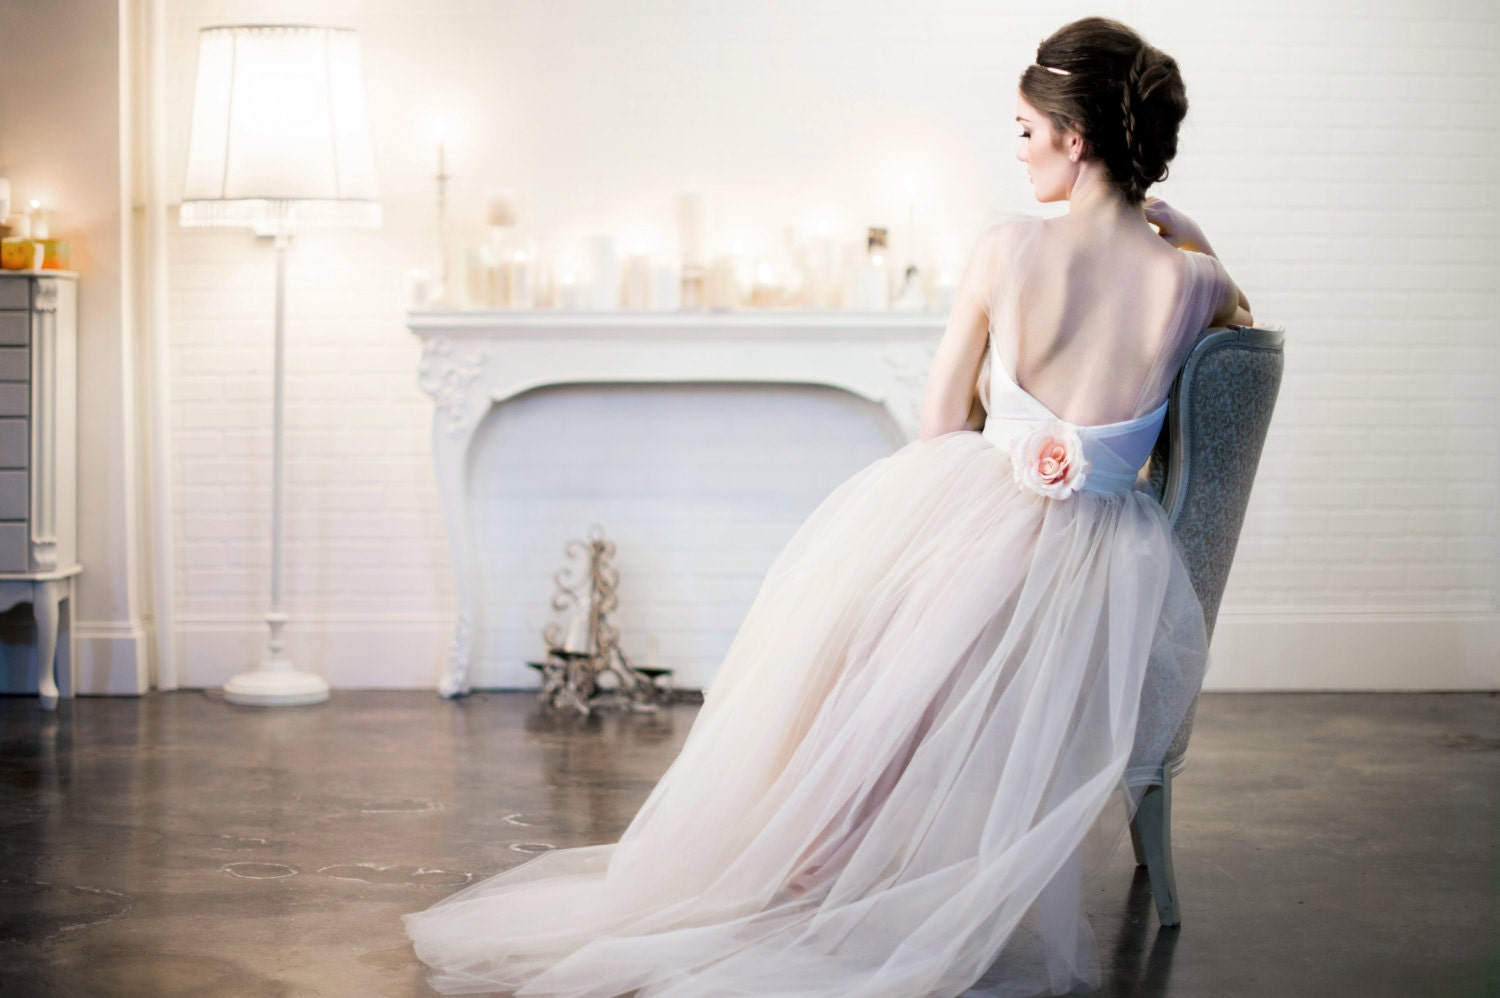 Modern Romance Wedding Dress : The modern romance wedding dress gown